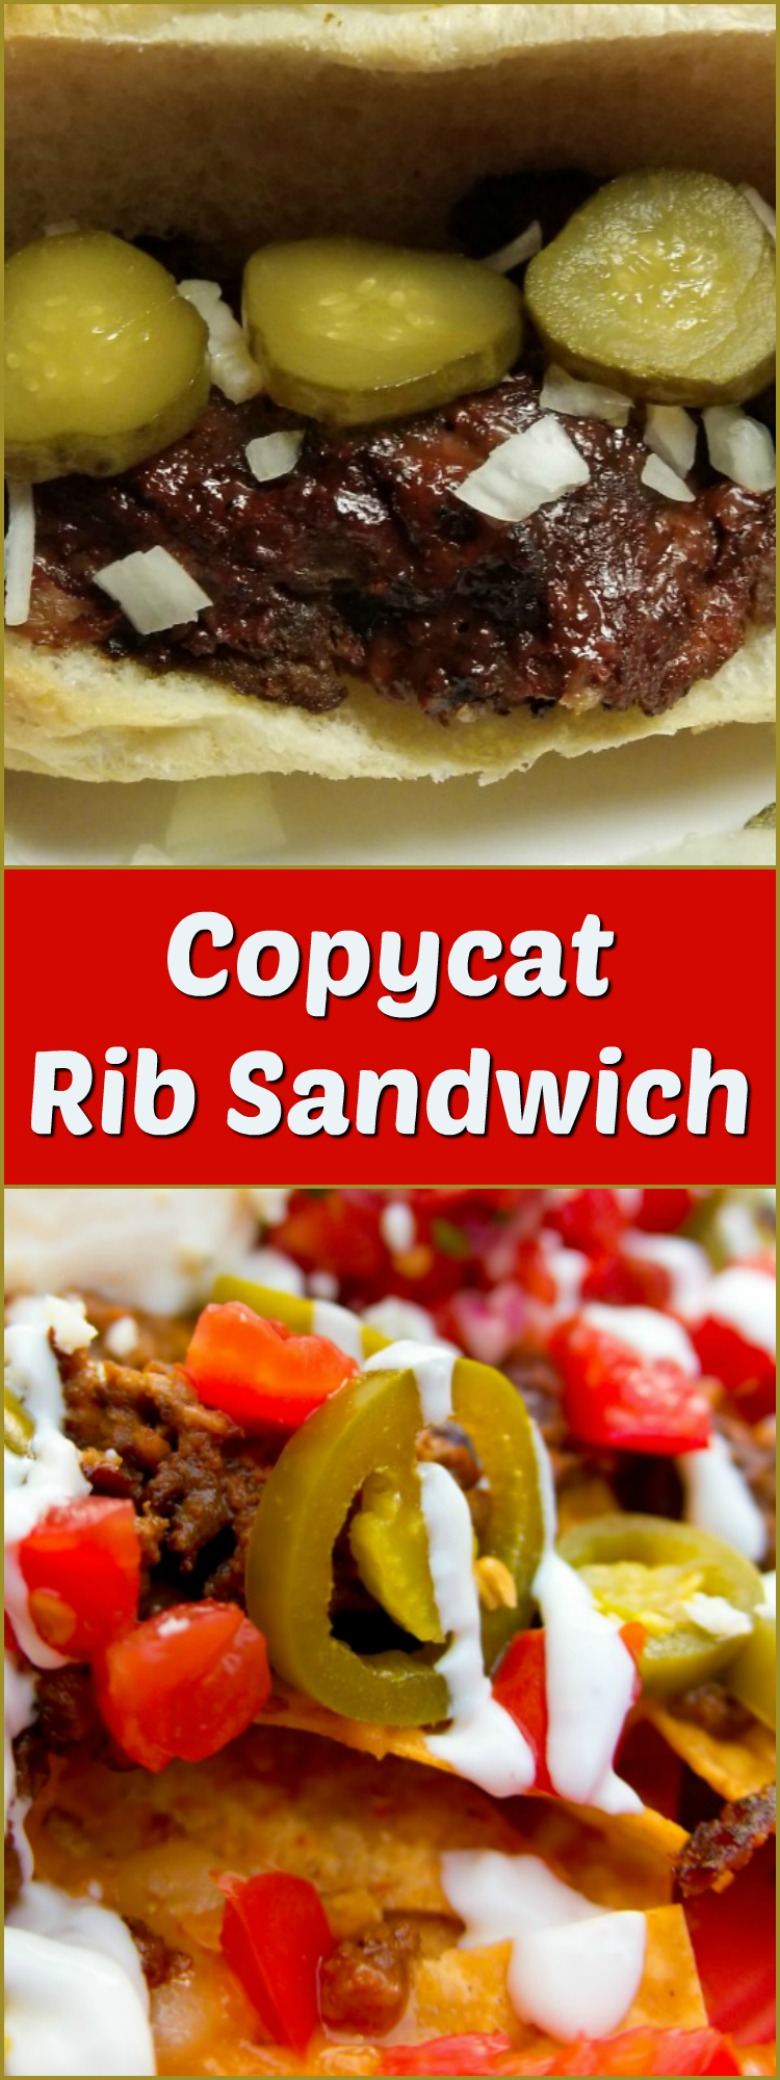 A copycat rib sandwich shown in an open roll and topped with pickles and chopped onions.